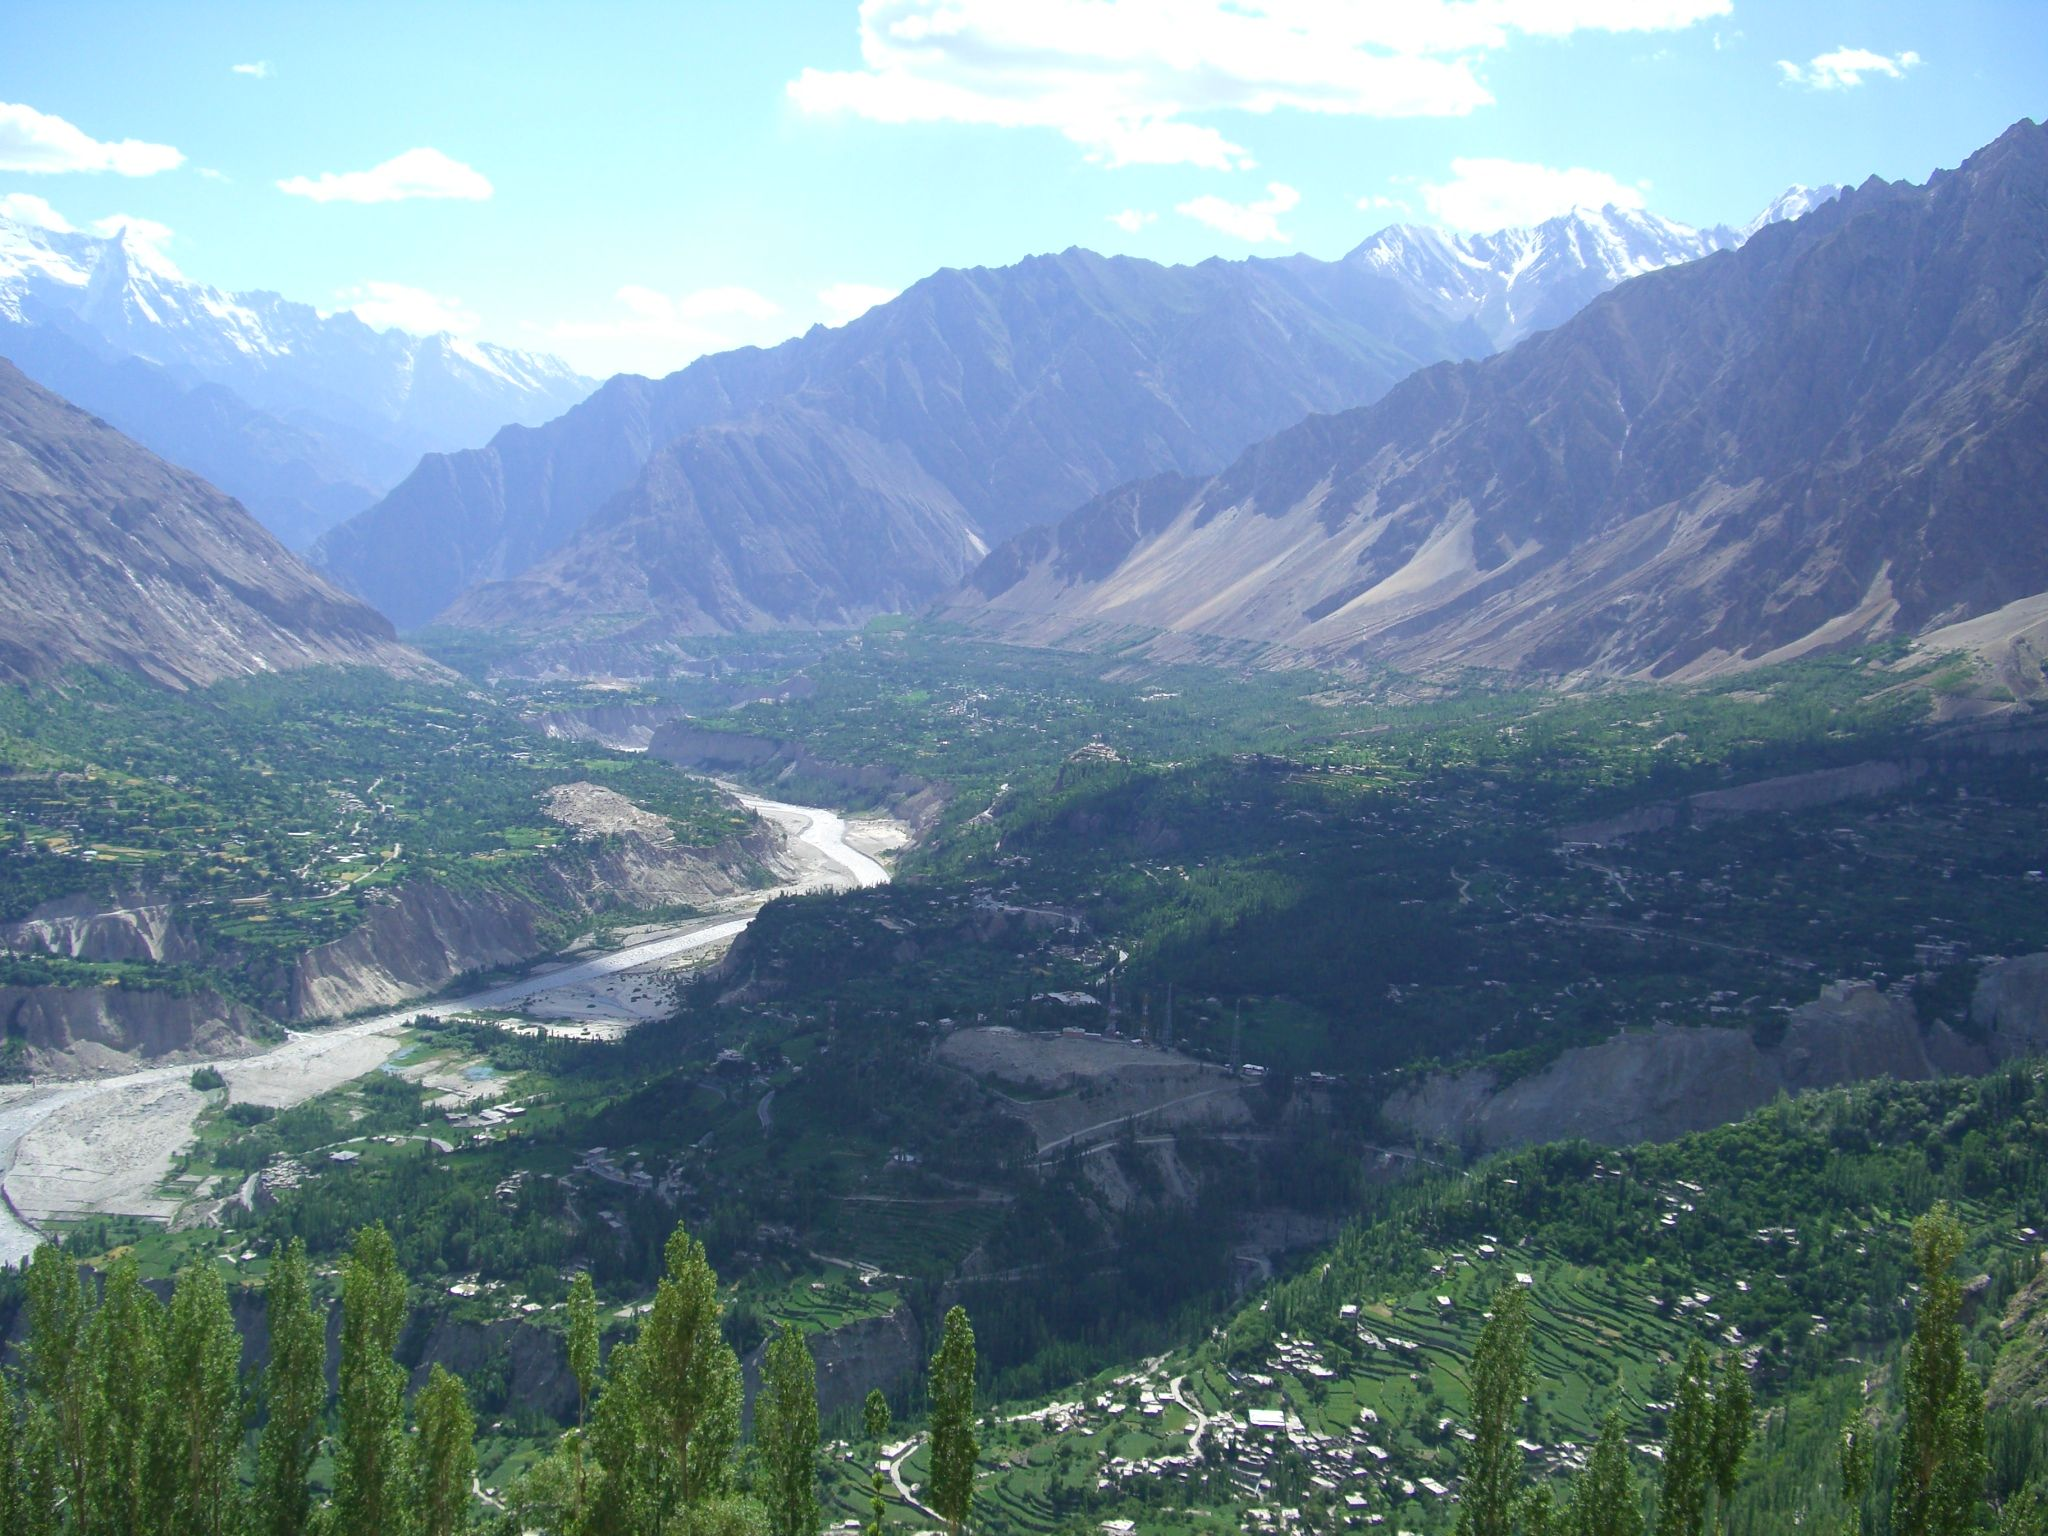 Hunza_Valley_from_Eagle_Point by aziz ahmed heikal